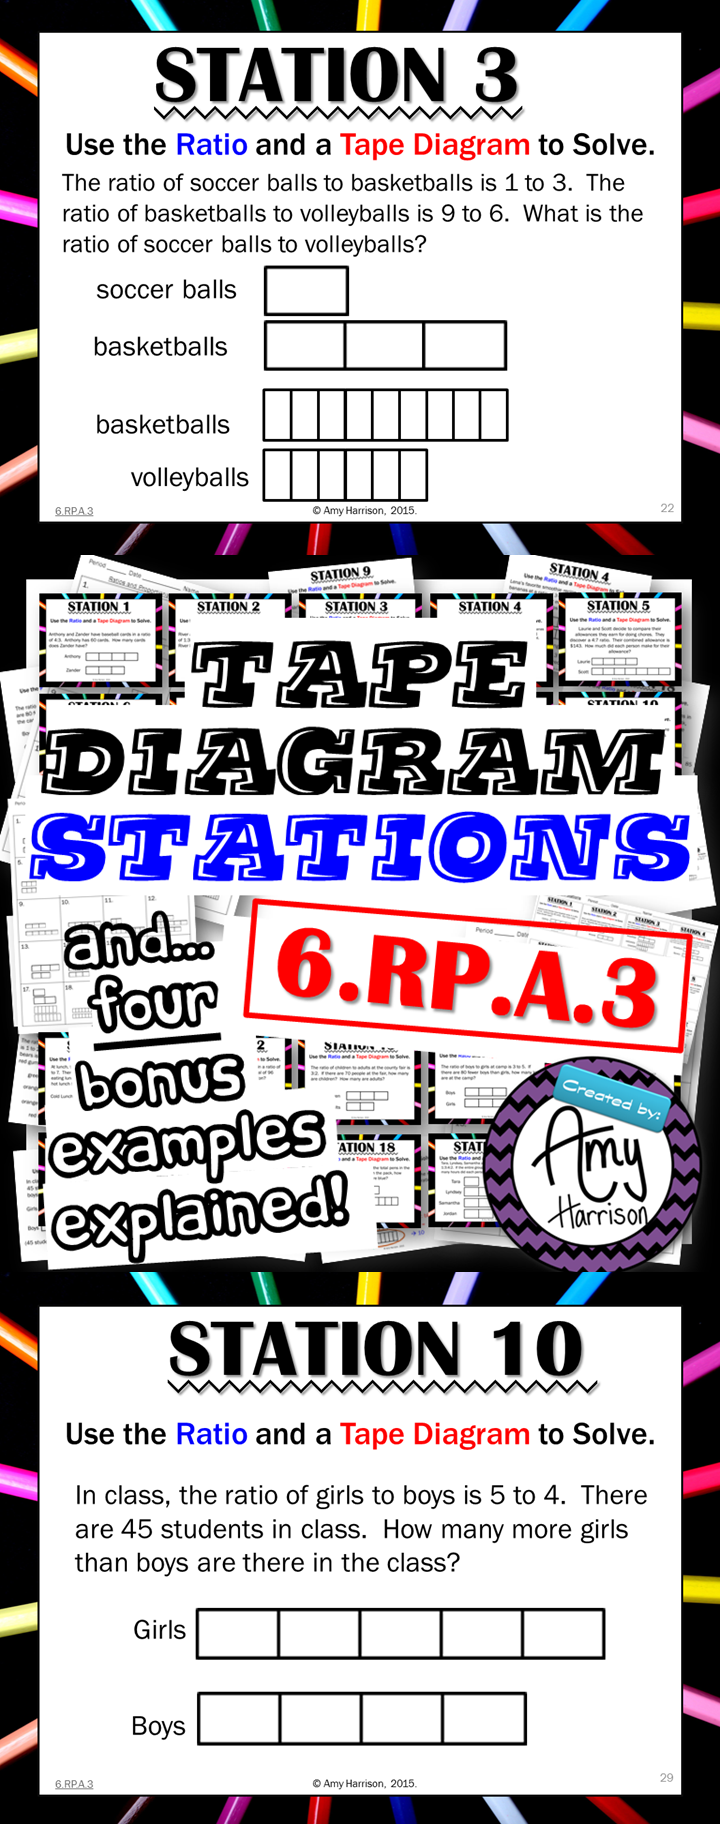 Tape diagram explained all kind of wiring diagrams 6 rp a 3 tape diagram stations math for sixth grade pinterest rh pinterest com tape diagram examples 3rd grade tape diagram examples 6th grade ccuart Gallery